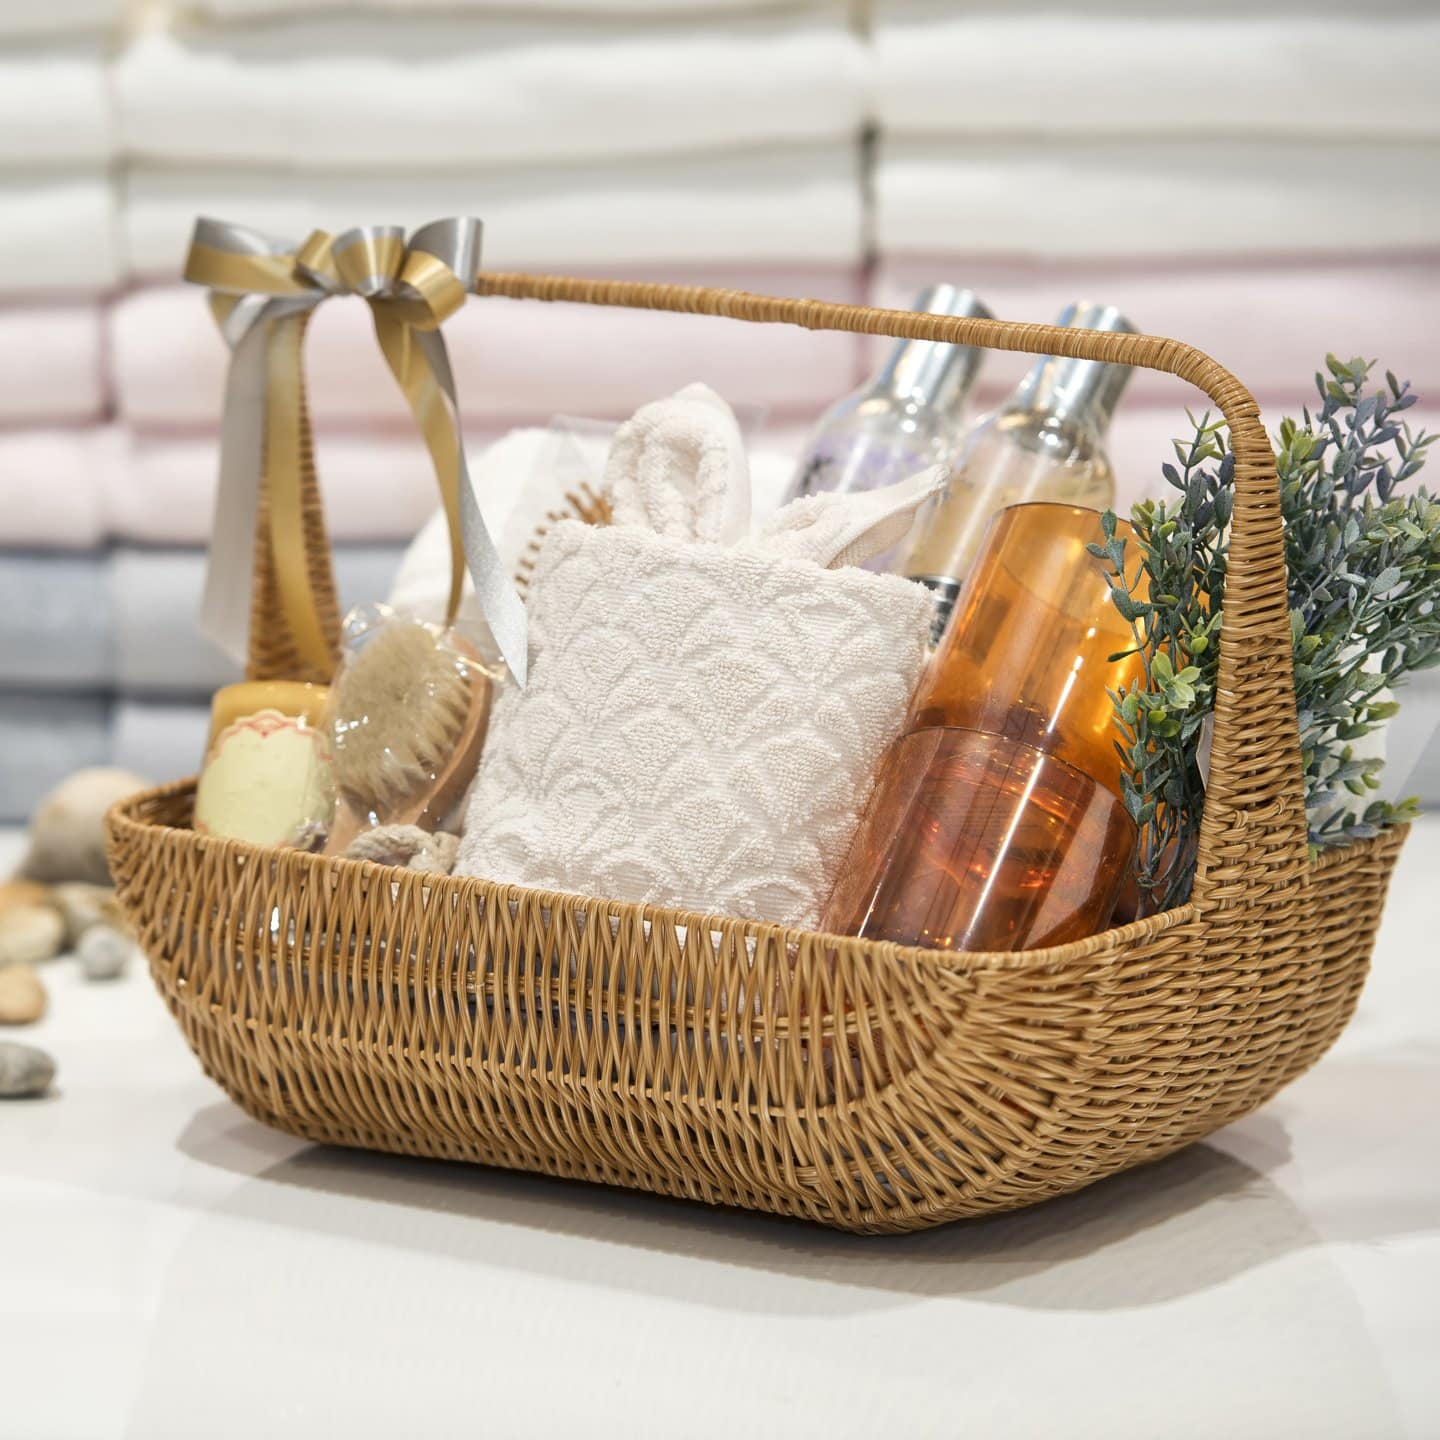 Gift Design Home Business Work from Kitchen donation creative repute care packages creative repute website design web maintenance coronavirus delivery